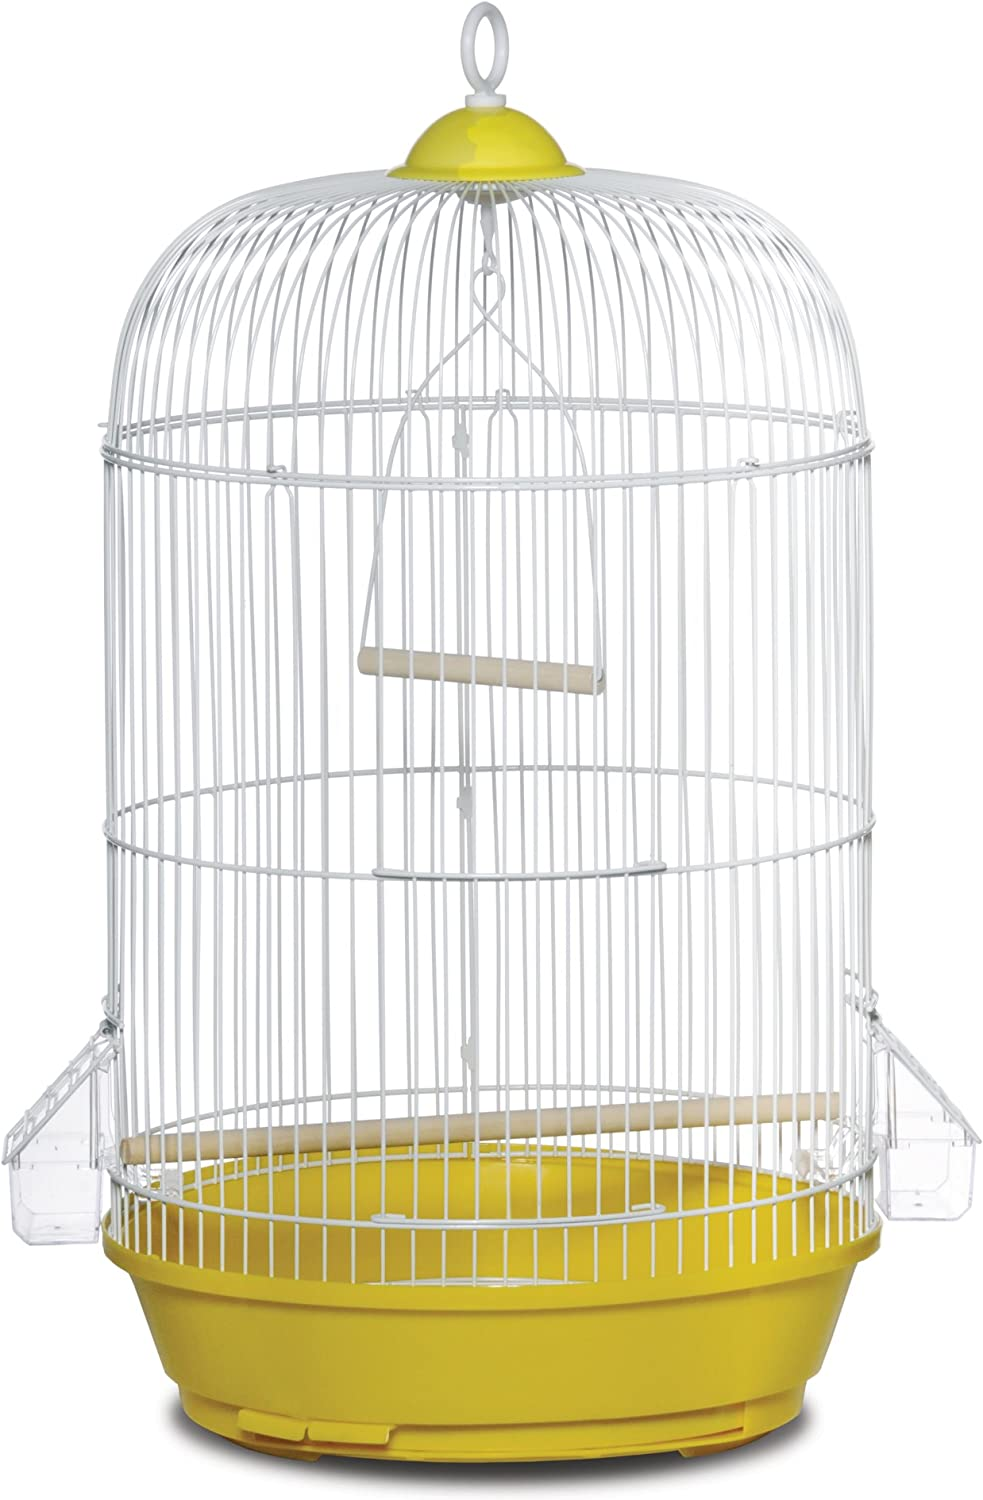 Prevue Hendryx SP31999Y Classic Indianapolis Mall Yellow Bird Round store Cage